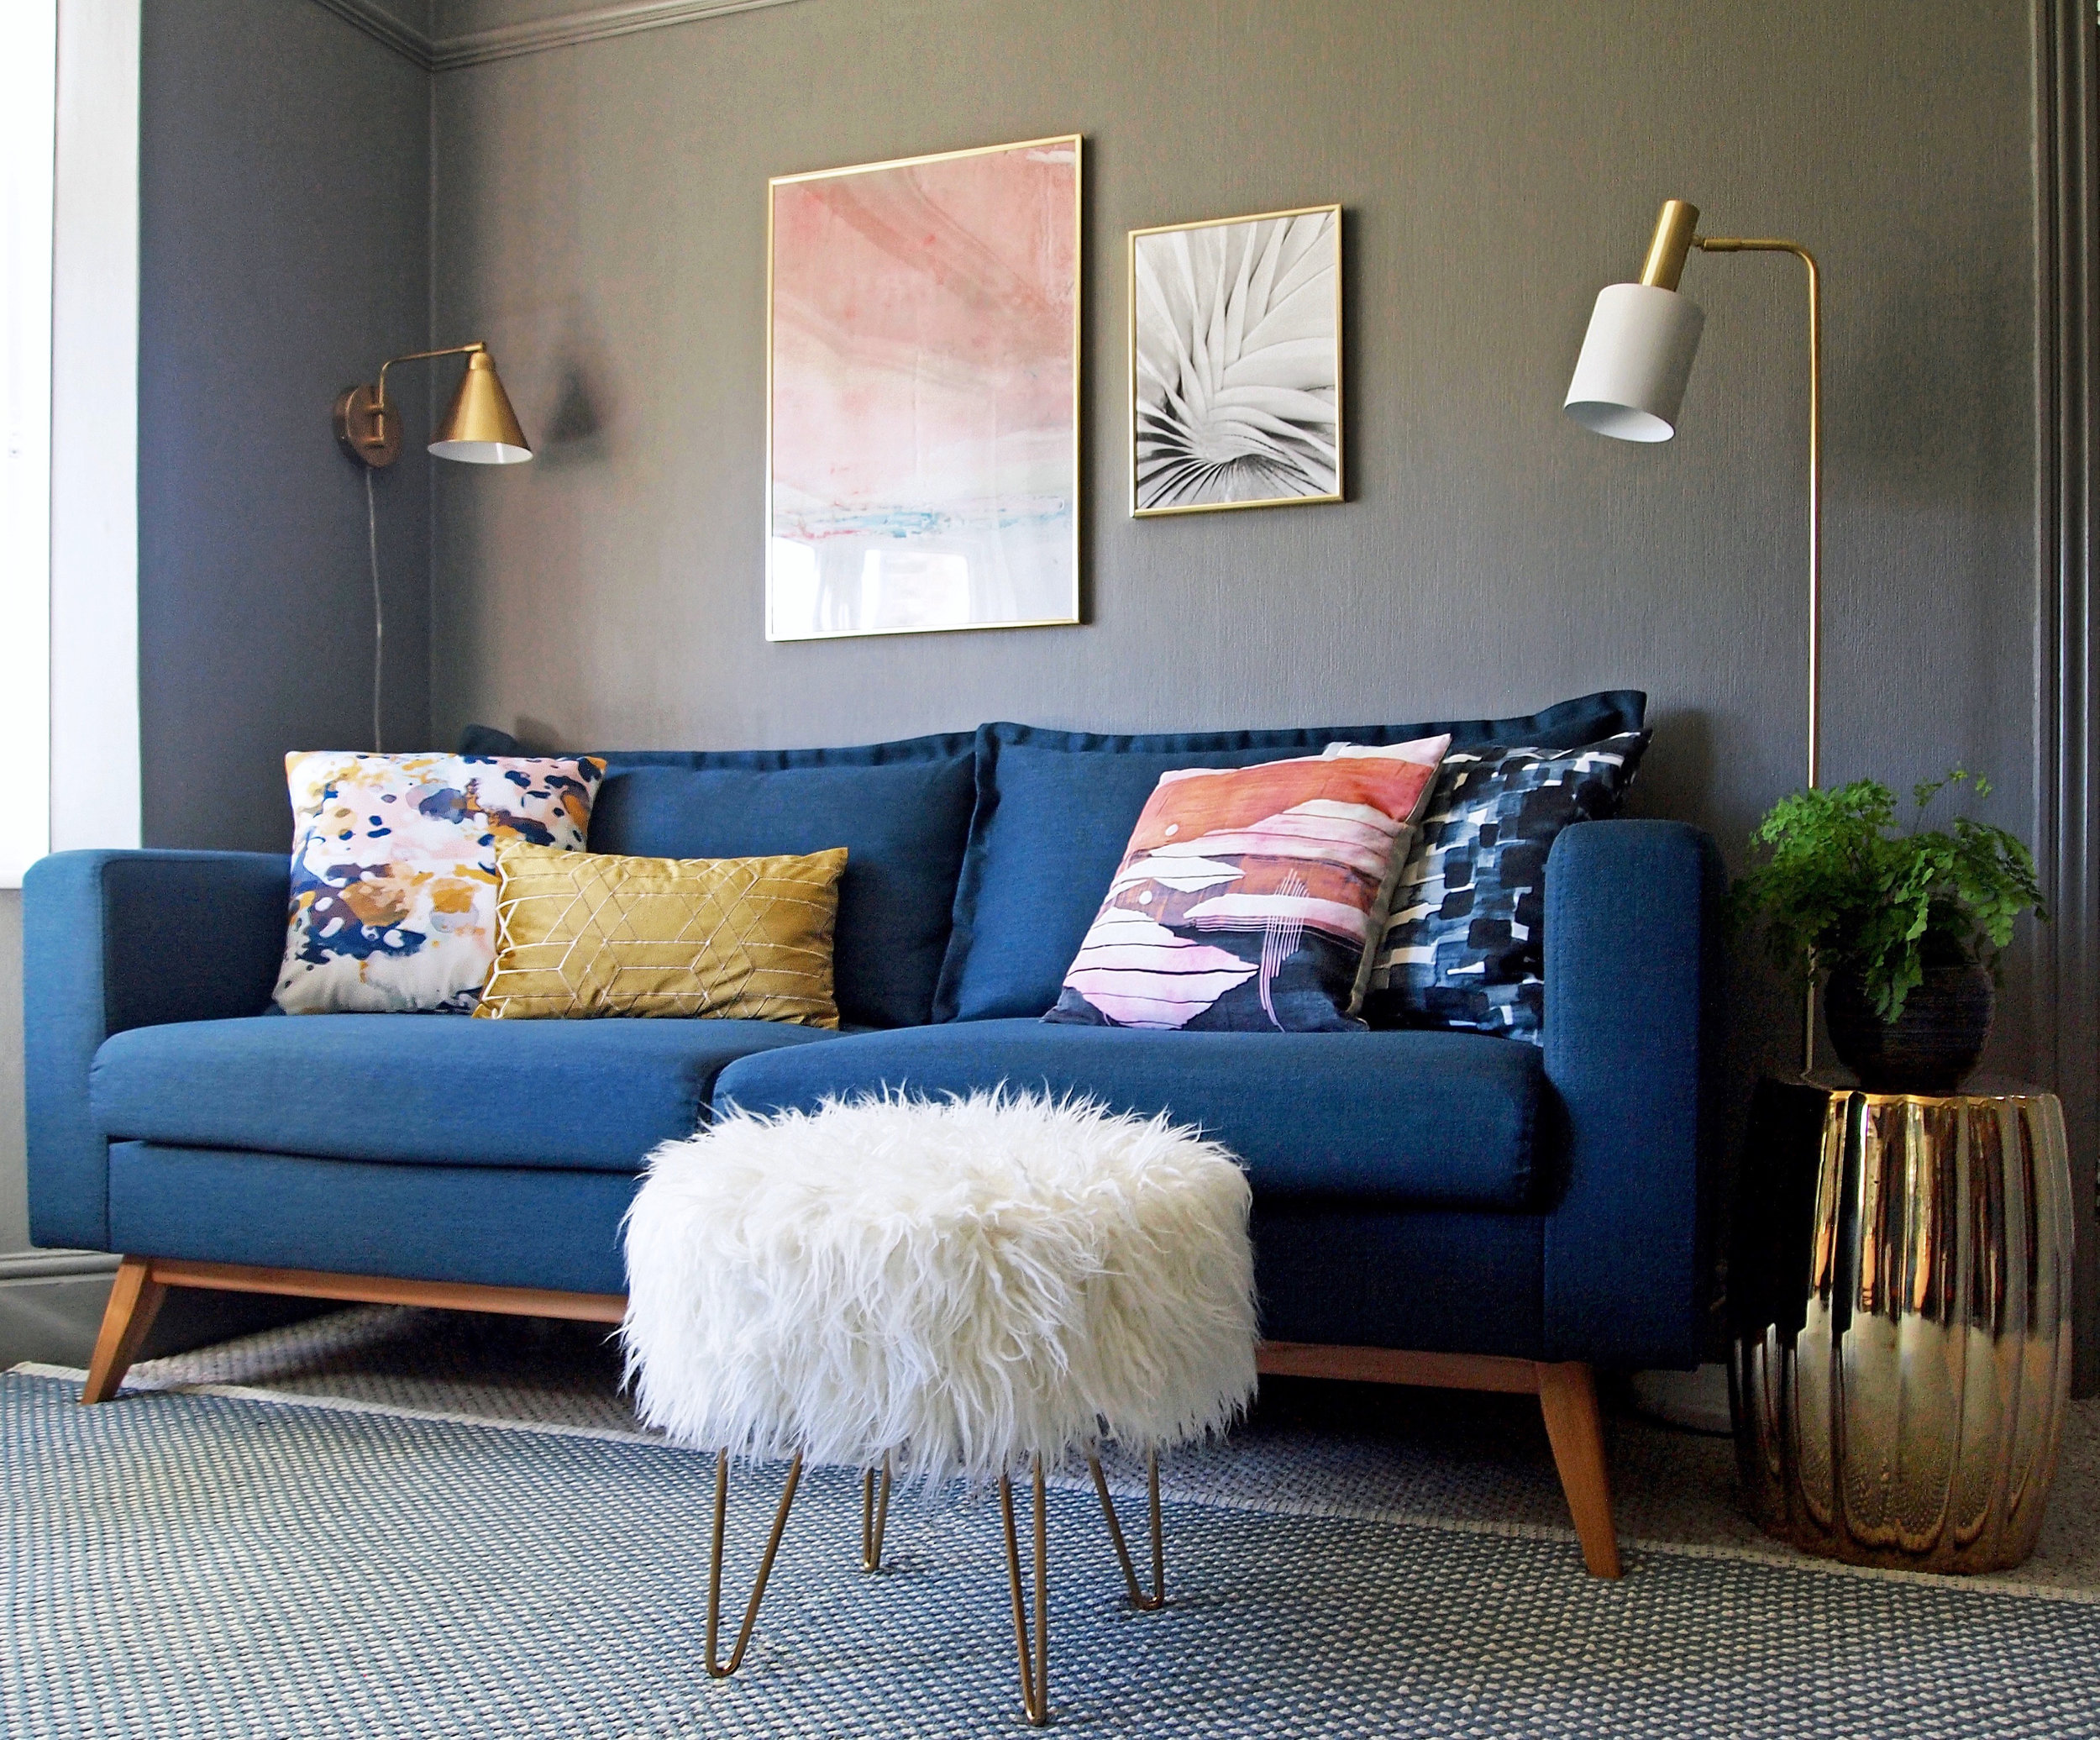 Living room - copyright Meera Pendred 2017 (2).jpg